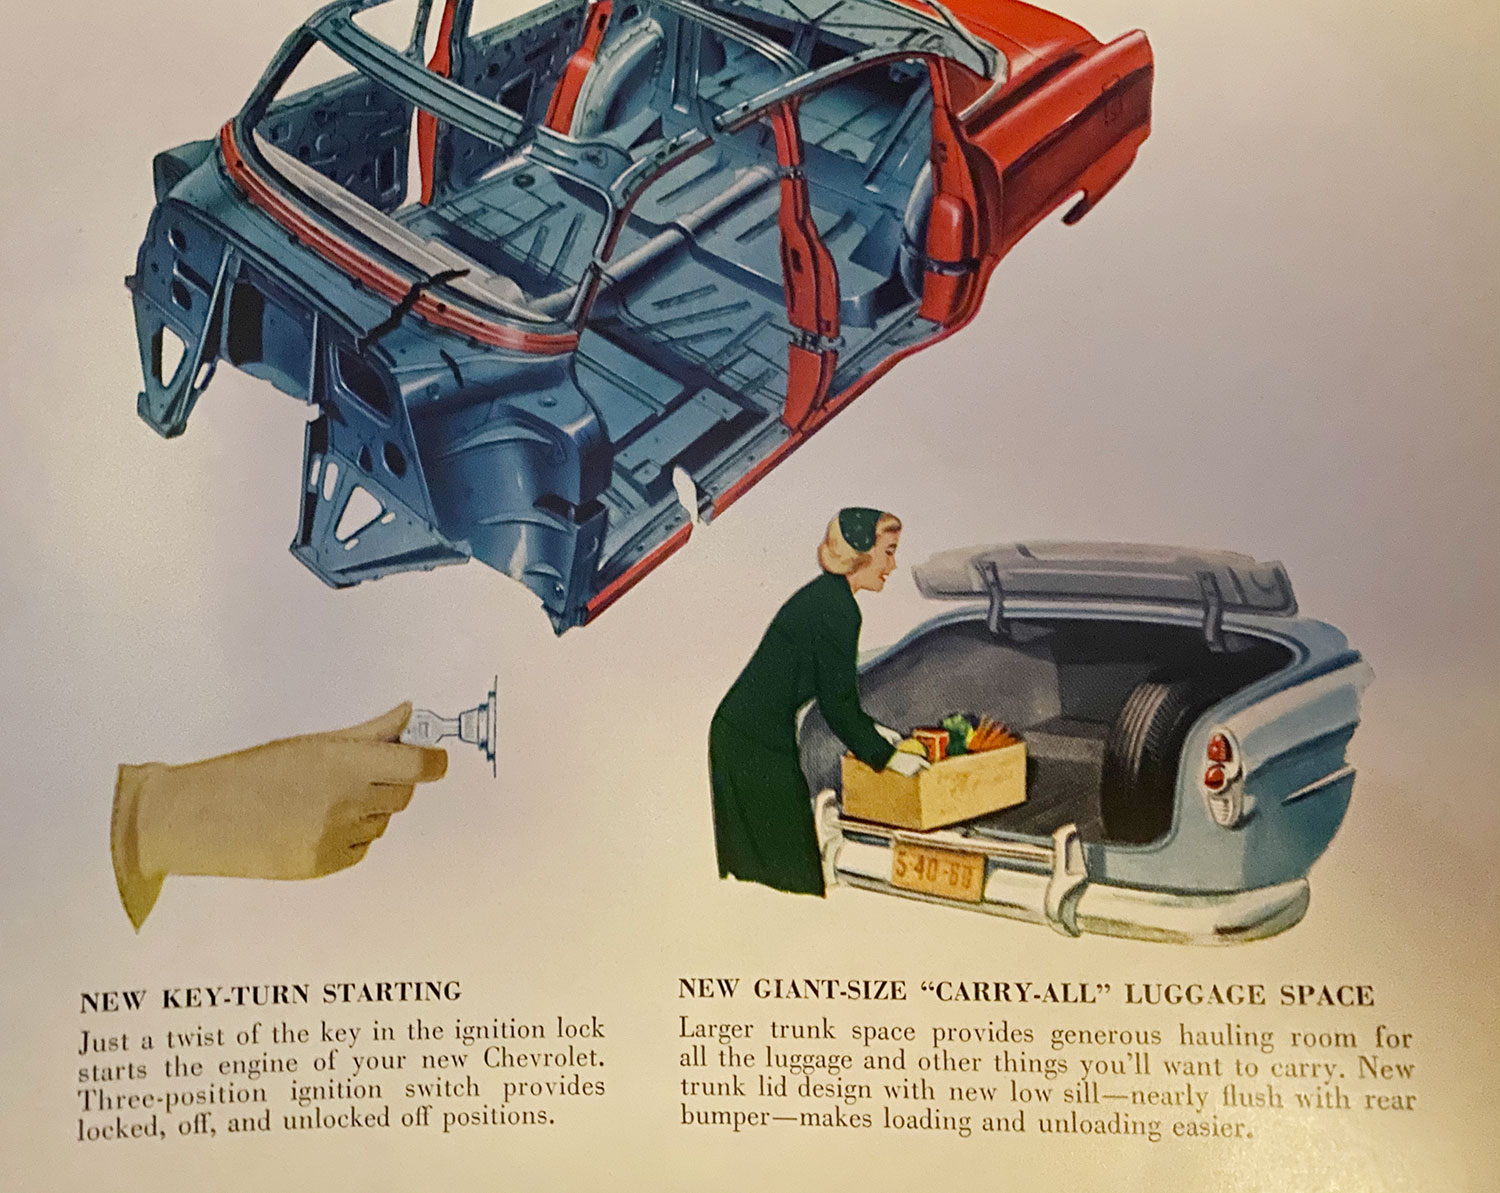 1953 Chevy sales brochure photo trunk and construction